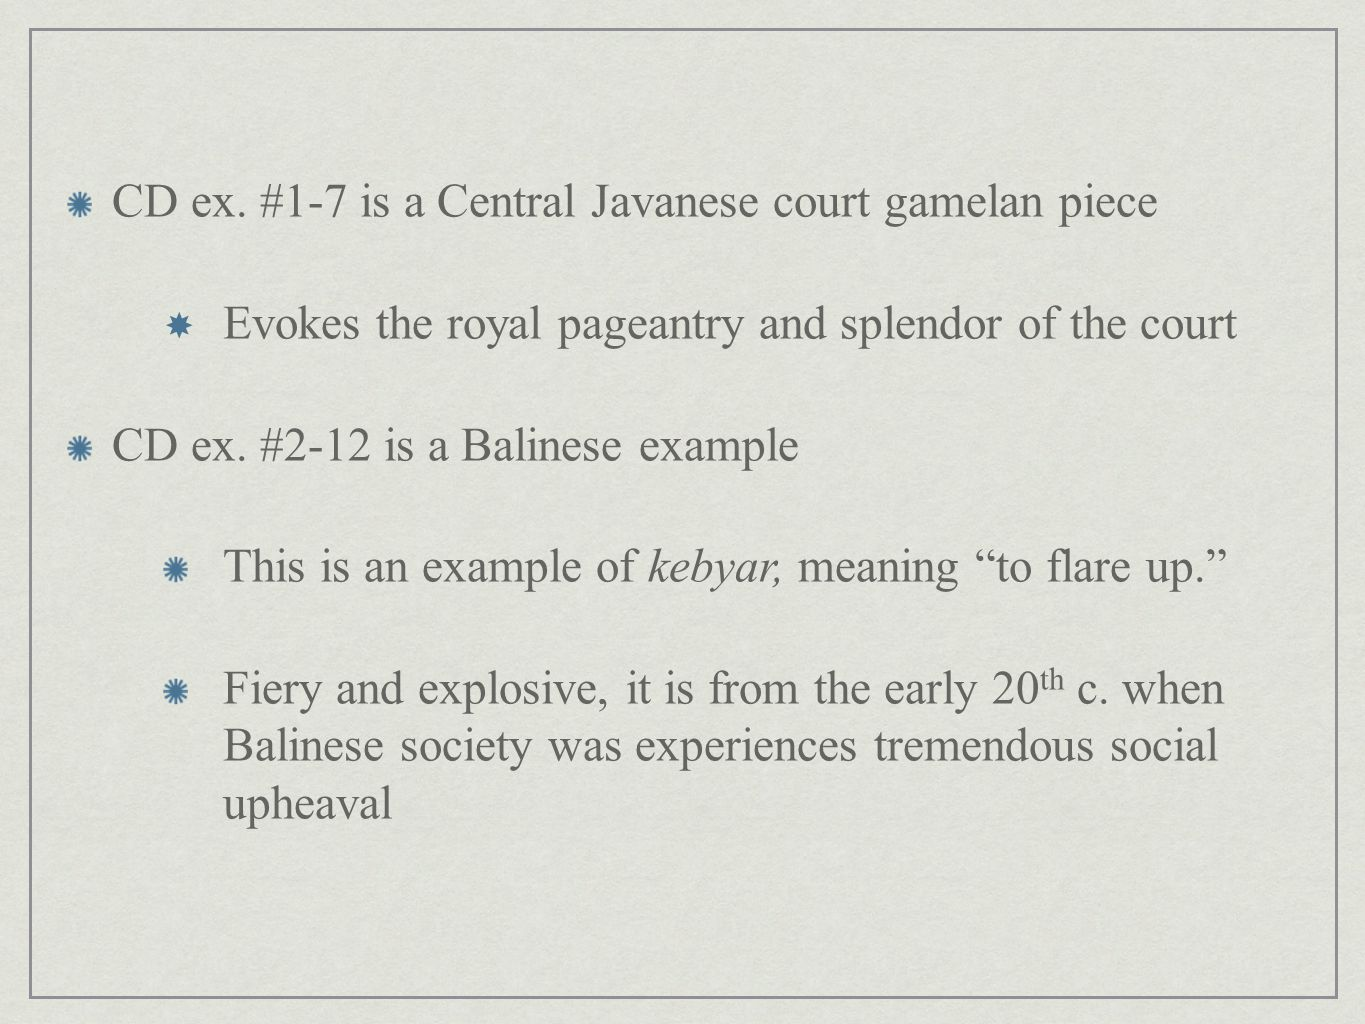 CD ex. #1-7 is a Central Javanese court gamelan piece Evokes the royal pageantry and splendor of the court CD ex. #2-12 is a Balinese example This is